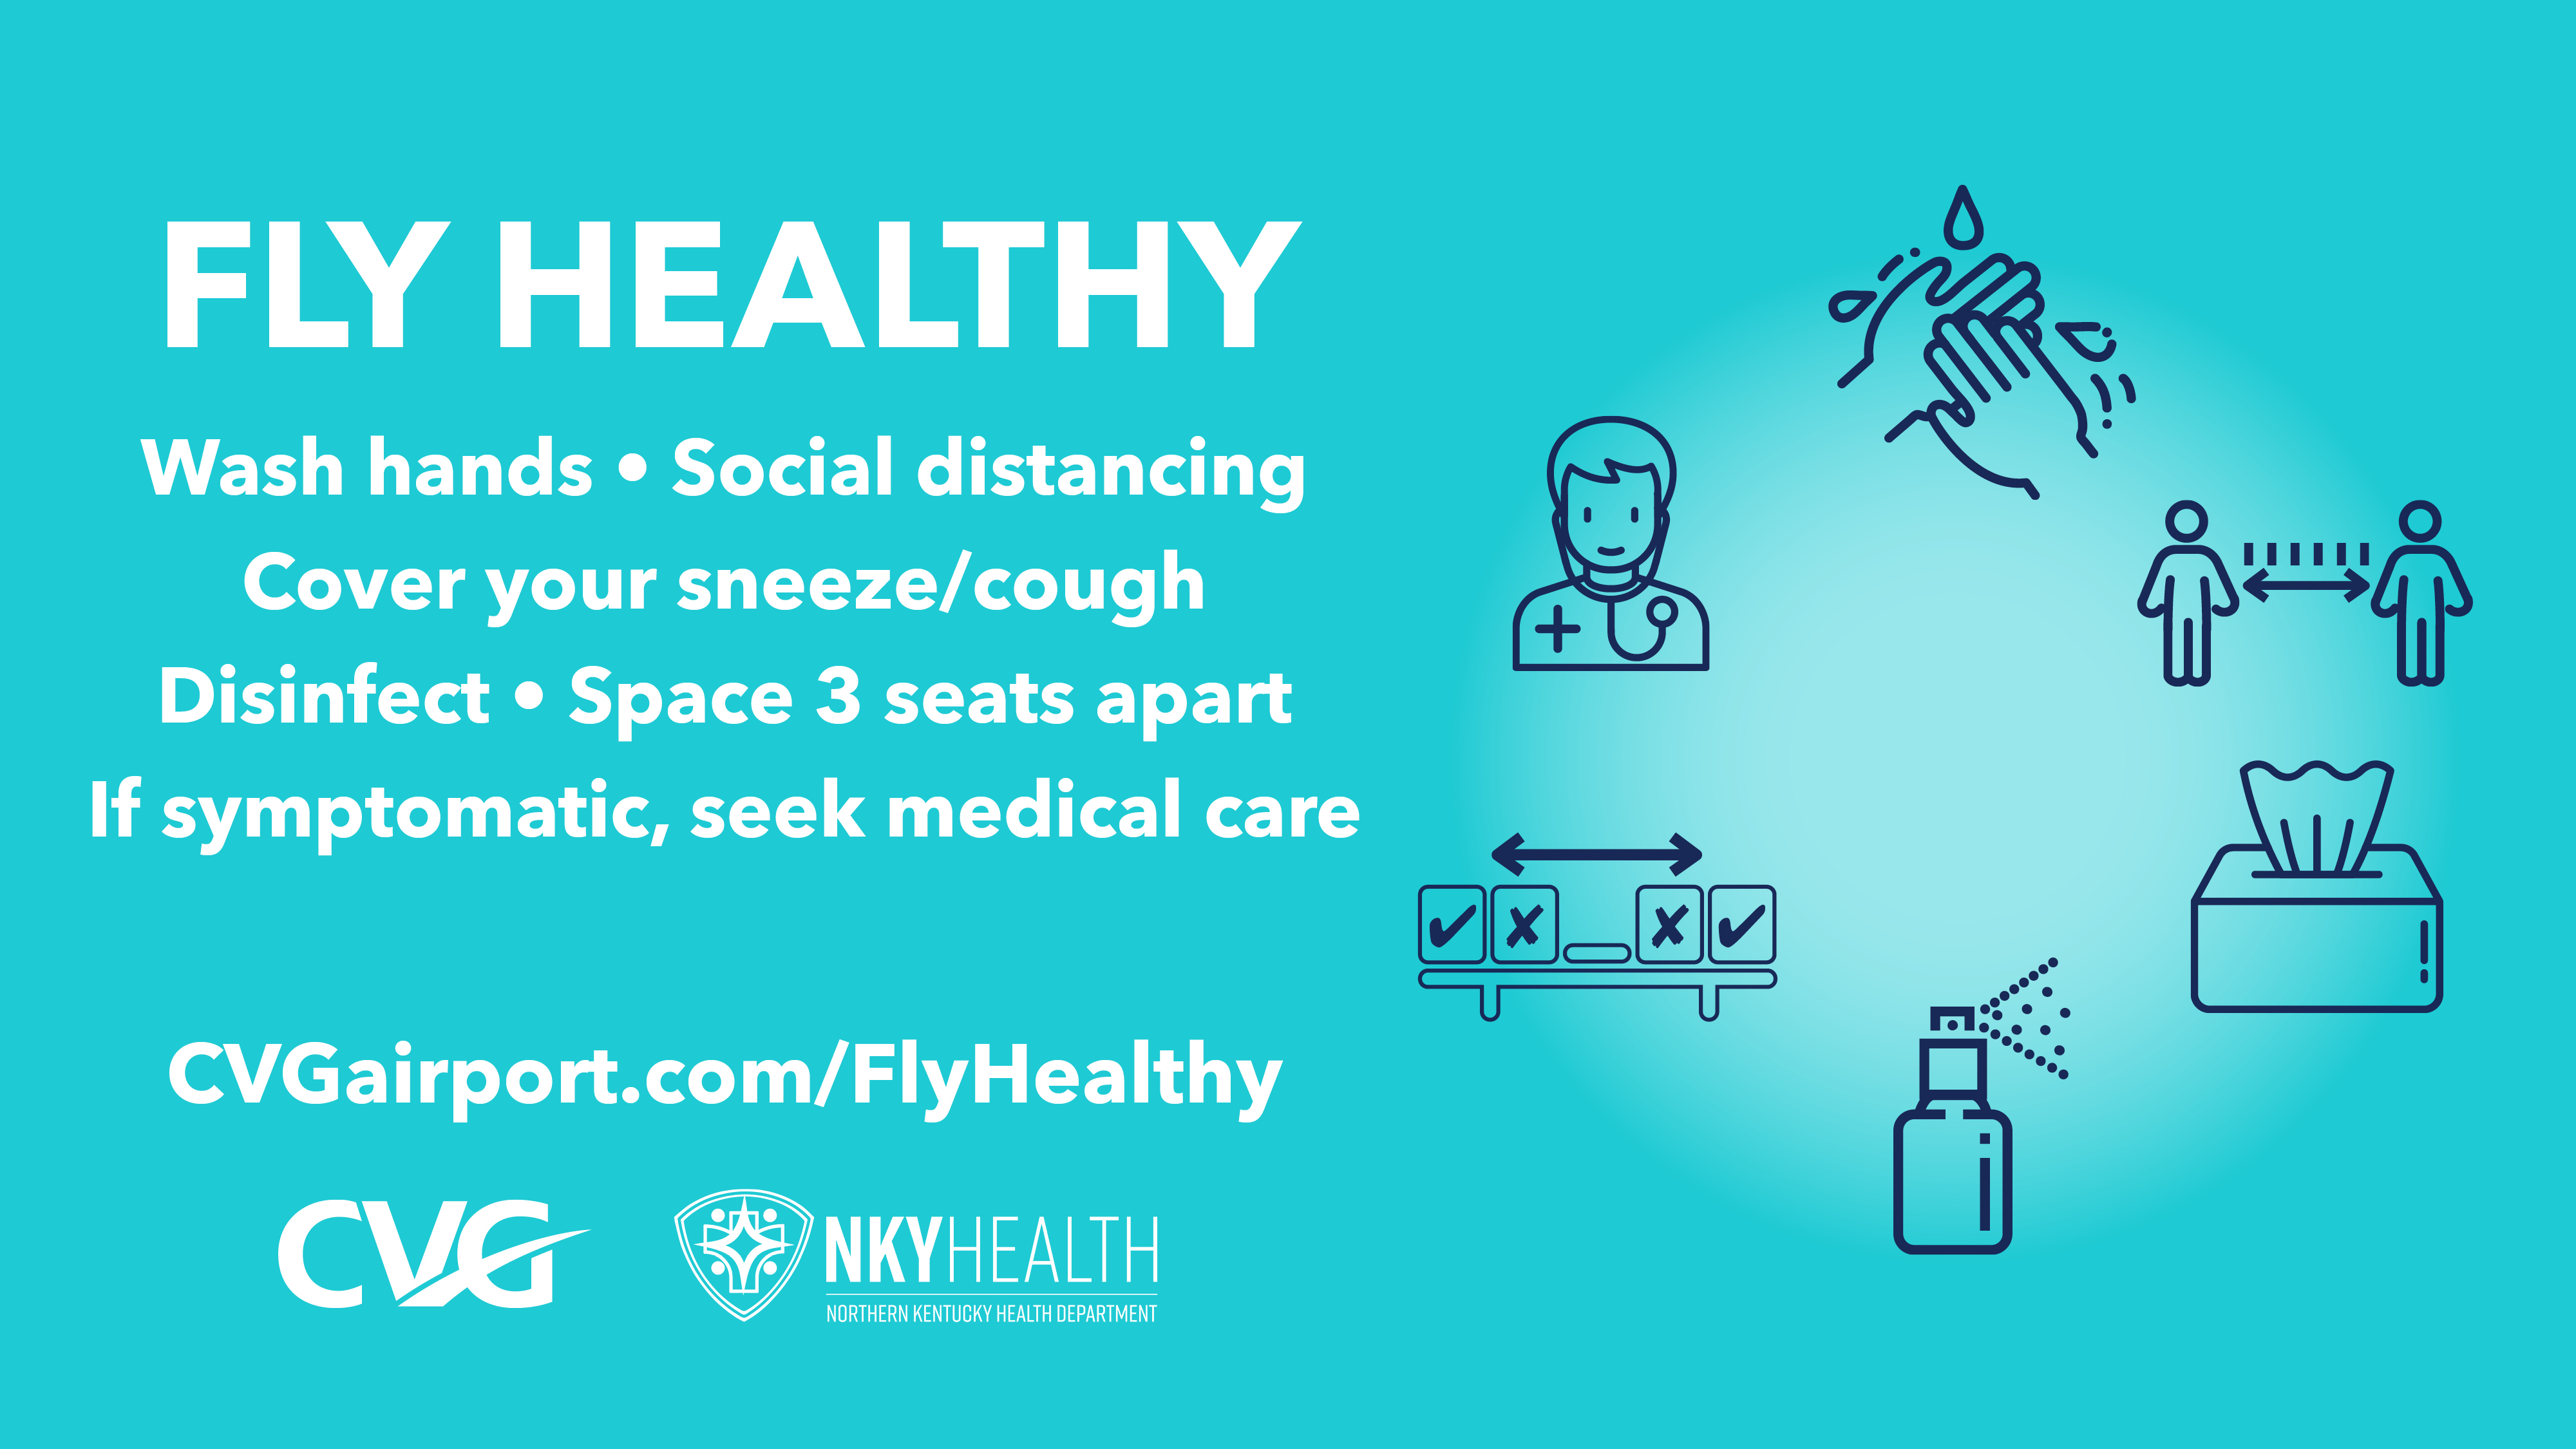 FlyHealthy-Rules